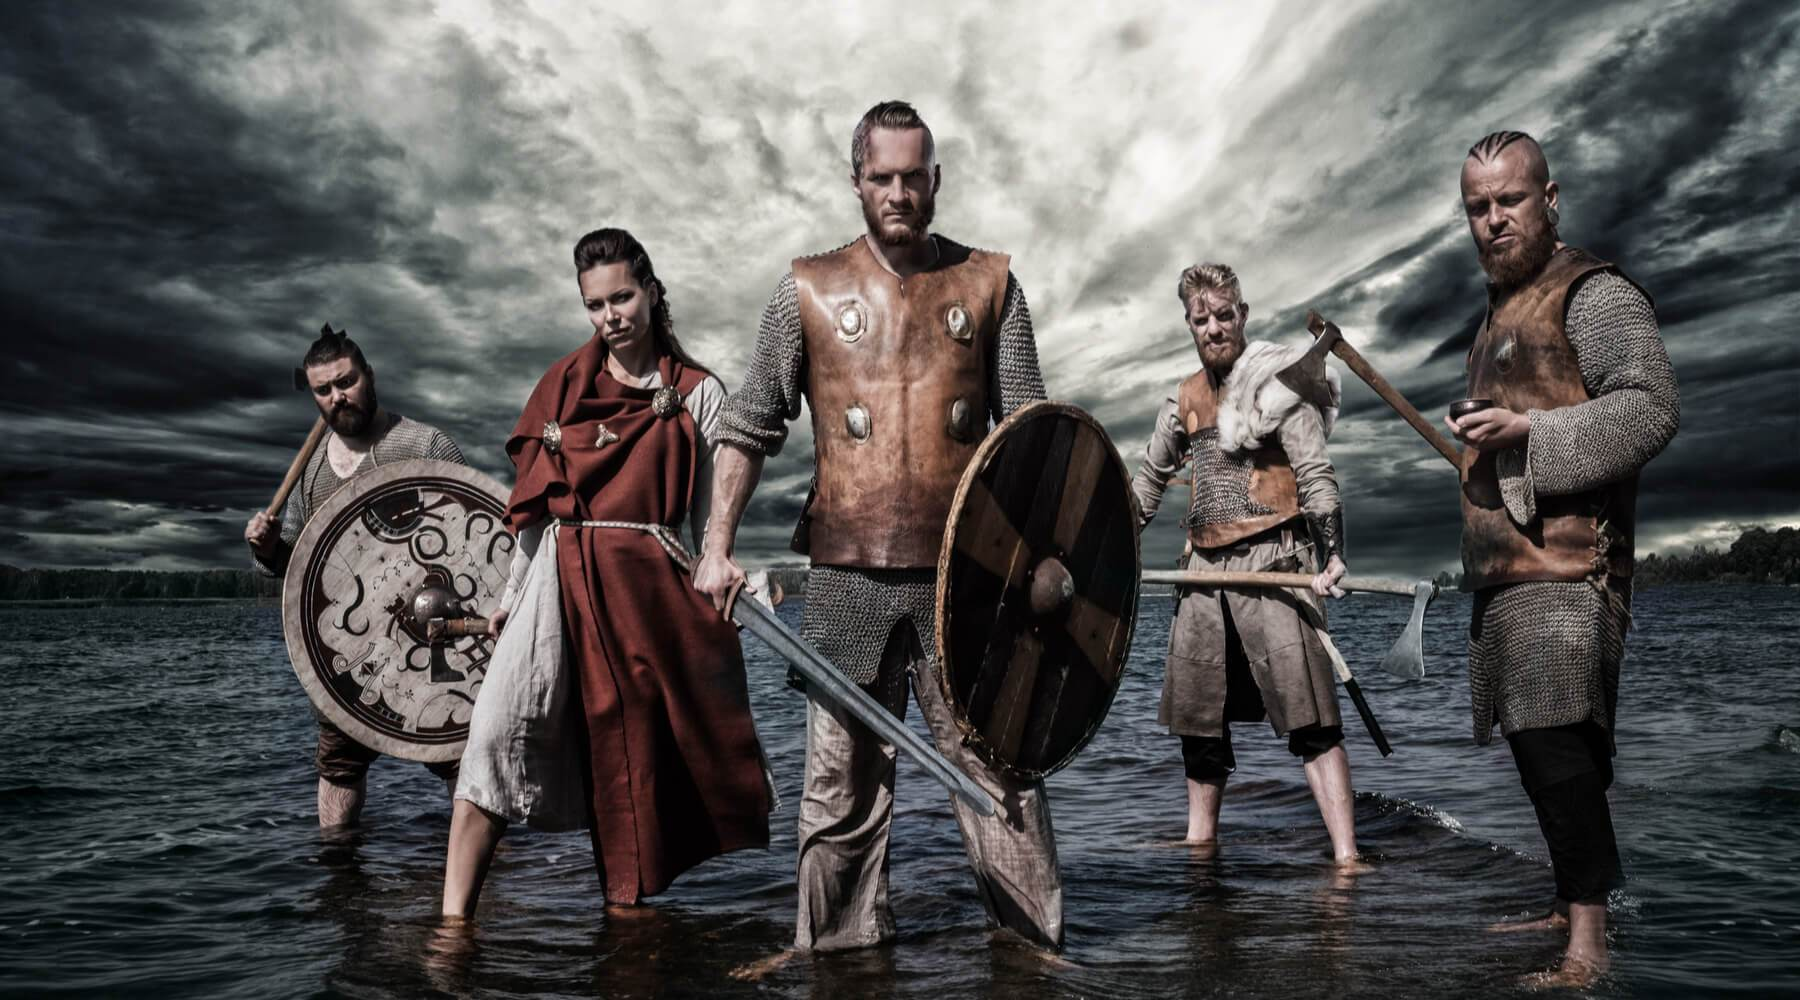 Four Viking warriors and a woman